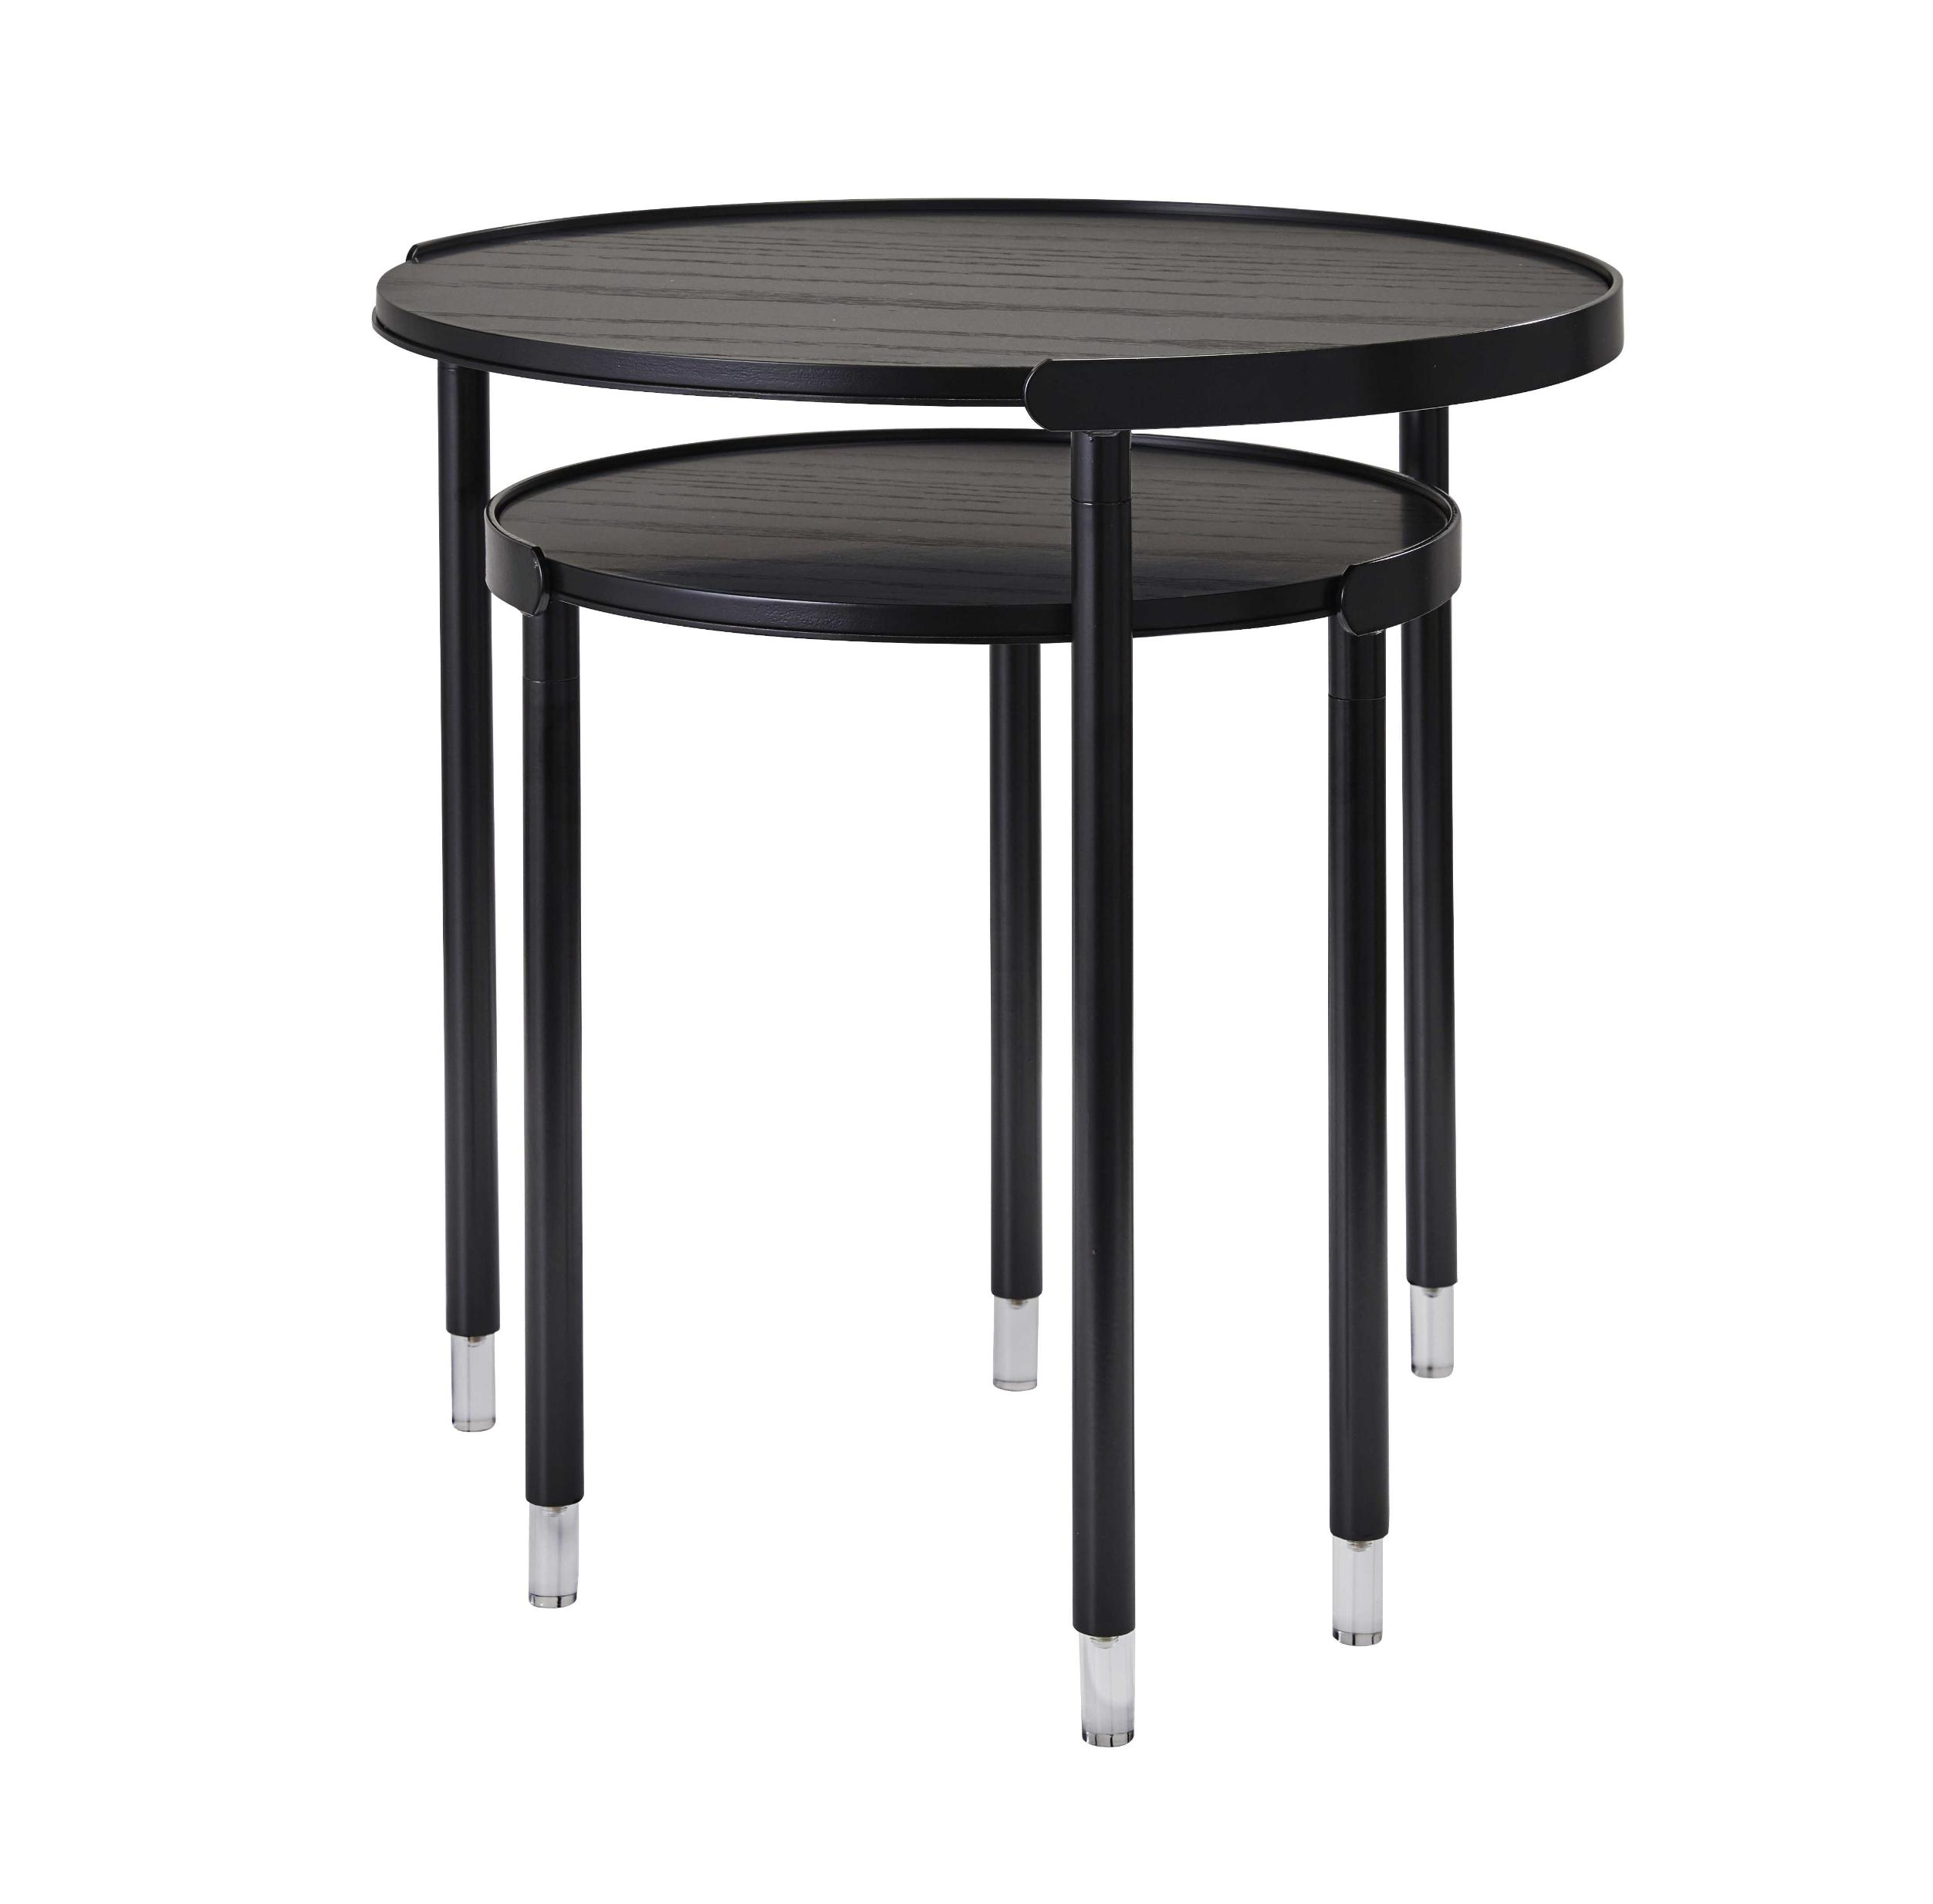 20 25 X 20 25 X 21 75 Black Large Nesting Tables Walmart Com Walmart Com